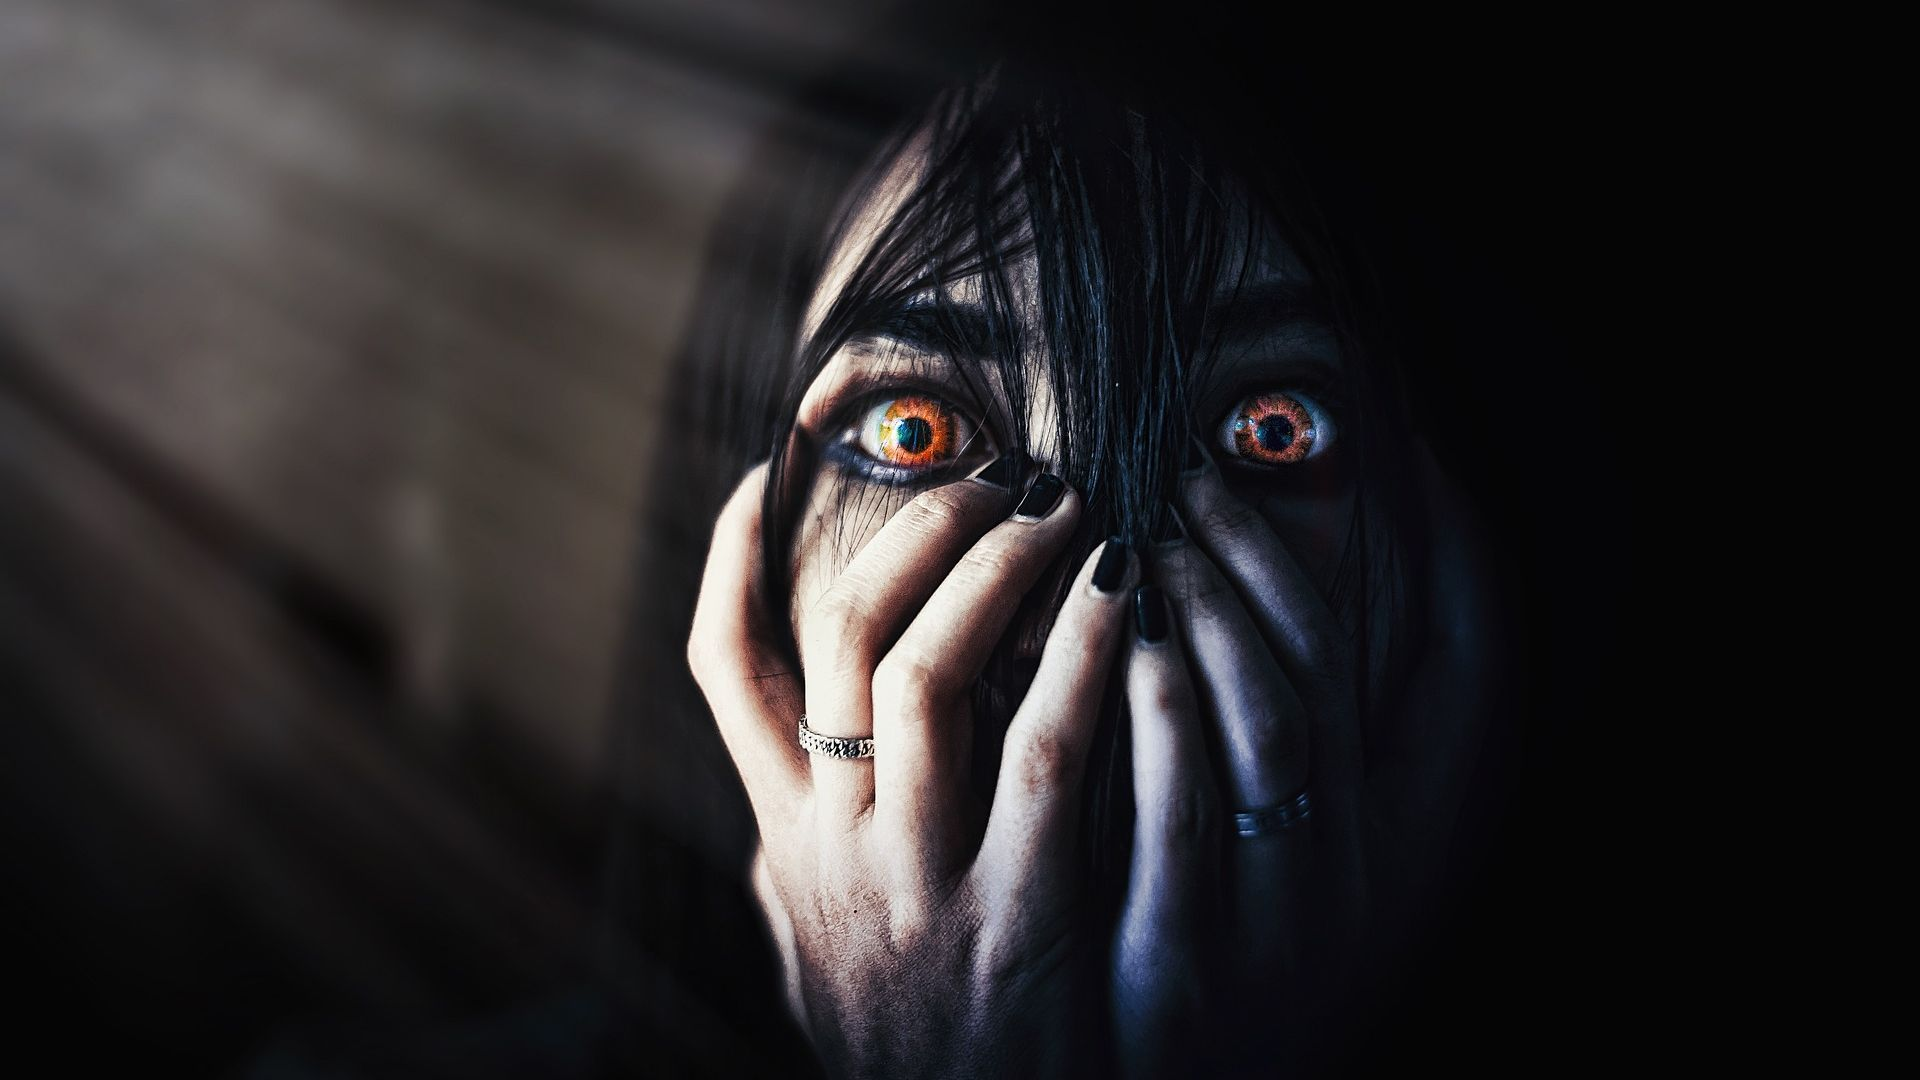 Faceless Close Up Scary Hd Wallpaper Scary Wallpaper Scary Scary Movies